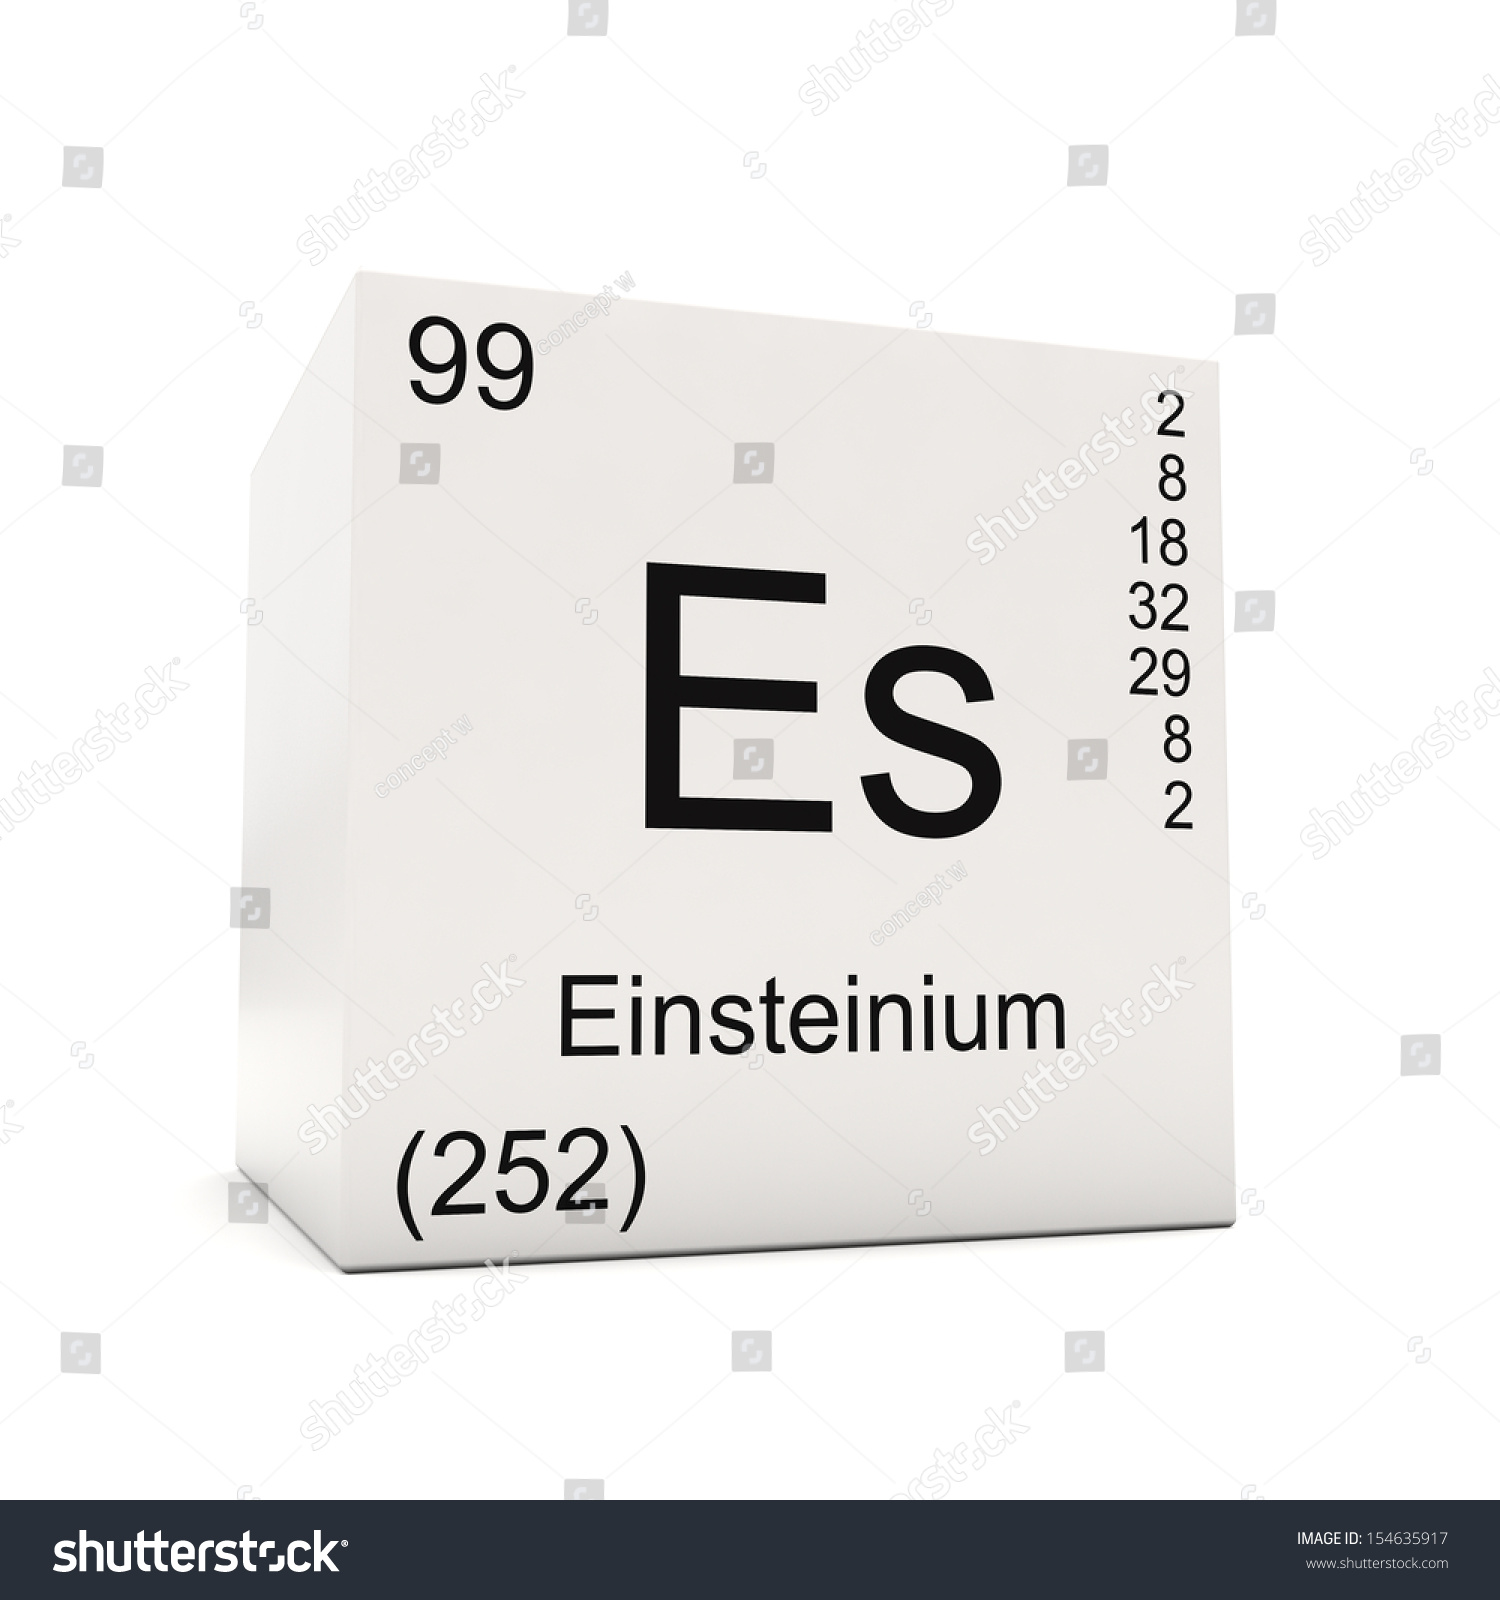 Einsteinium periodic table choice image periodic table images po element periodic table image collections periodic table images es element periodic table gallery periodic table gamestrikefo Image collections